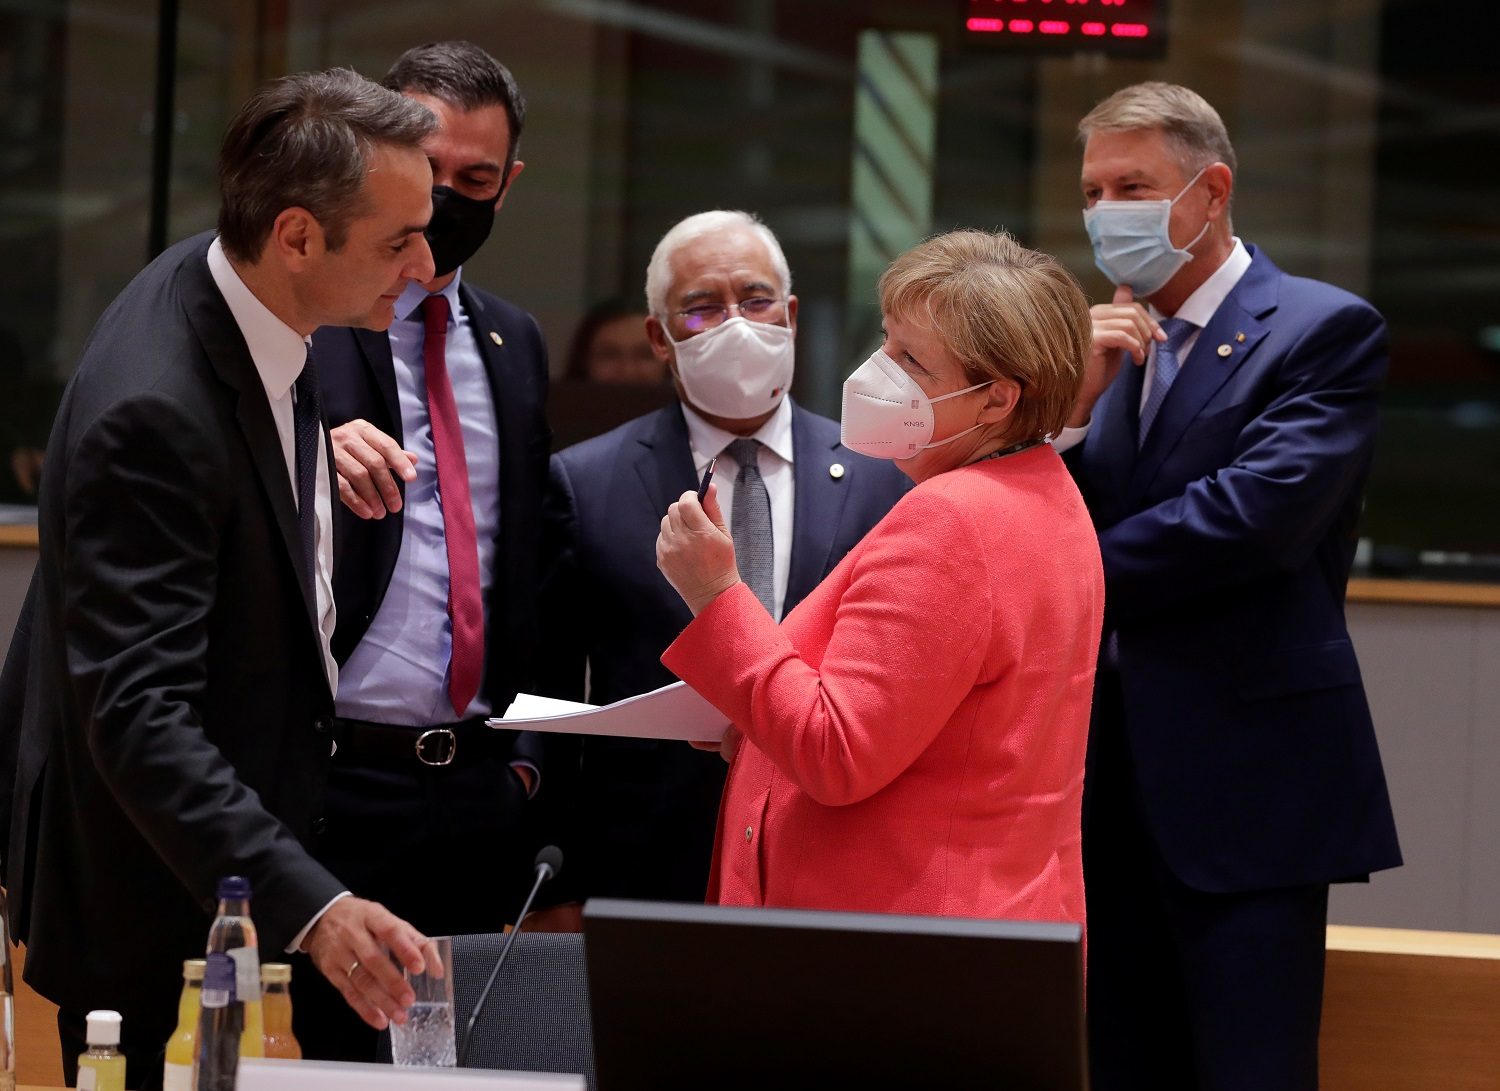 Greece's Prime Minister Kyriakos Mitsotakis, Spanish Prime Minister Pedro Sanchez, Portugal's Prime Minister Antonio Costa, Germany's Chancellor Angela Merkel and Romanian President Klaus Iohannis interact while wearing face masks during the last roundtable discussion following a four-day European summit at the European Council in Brussels, Belgium, July 21, 2020. Stephanie Lecocq/Pool via REUTERS